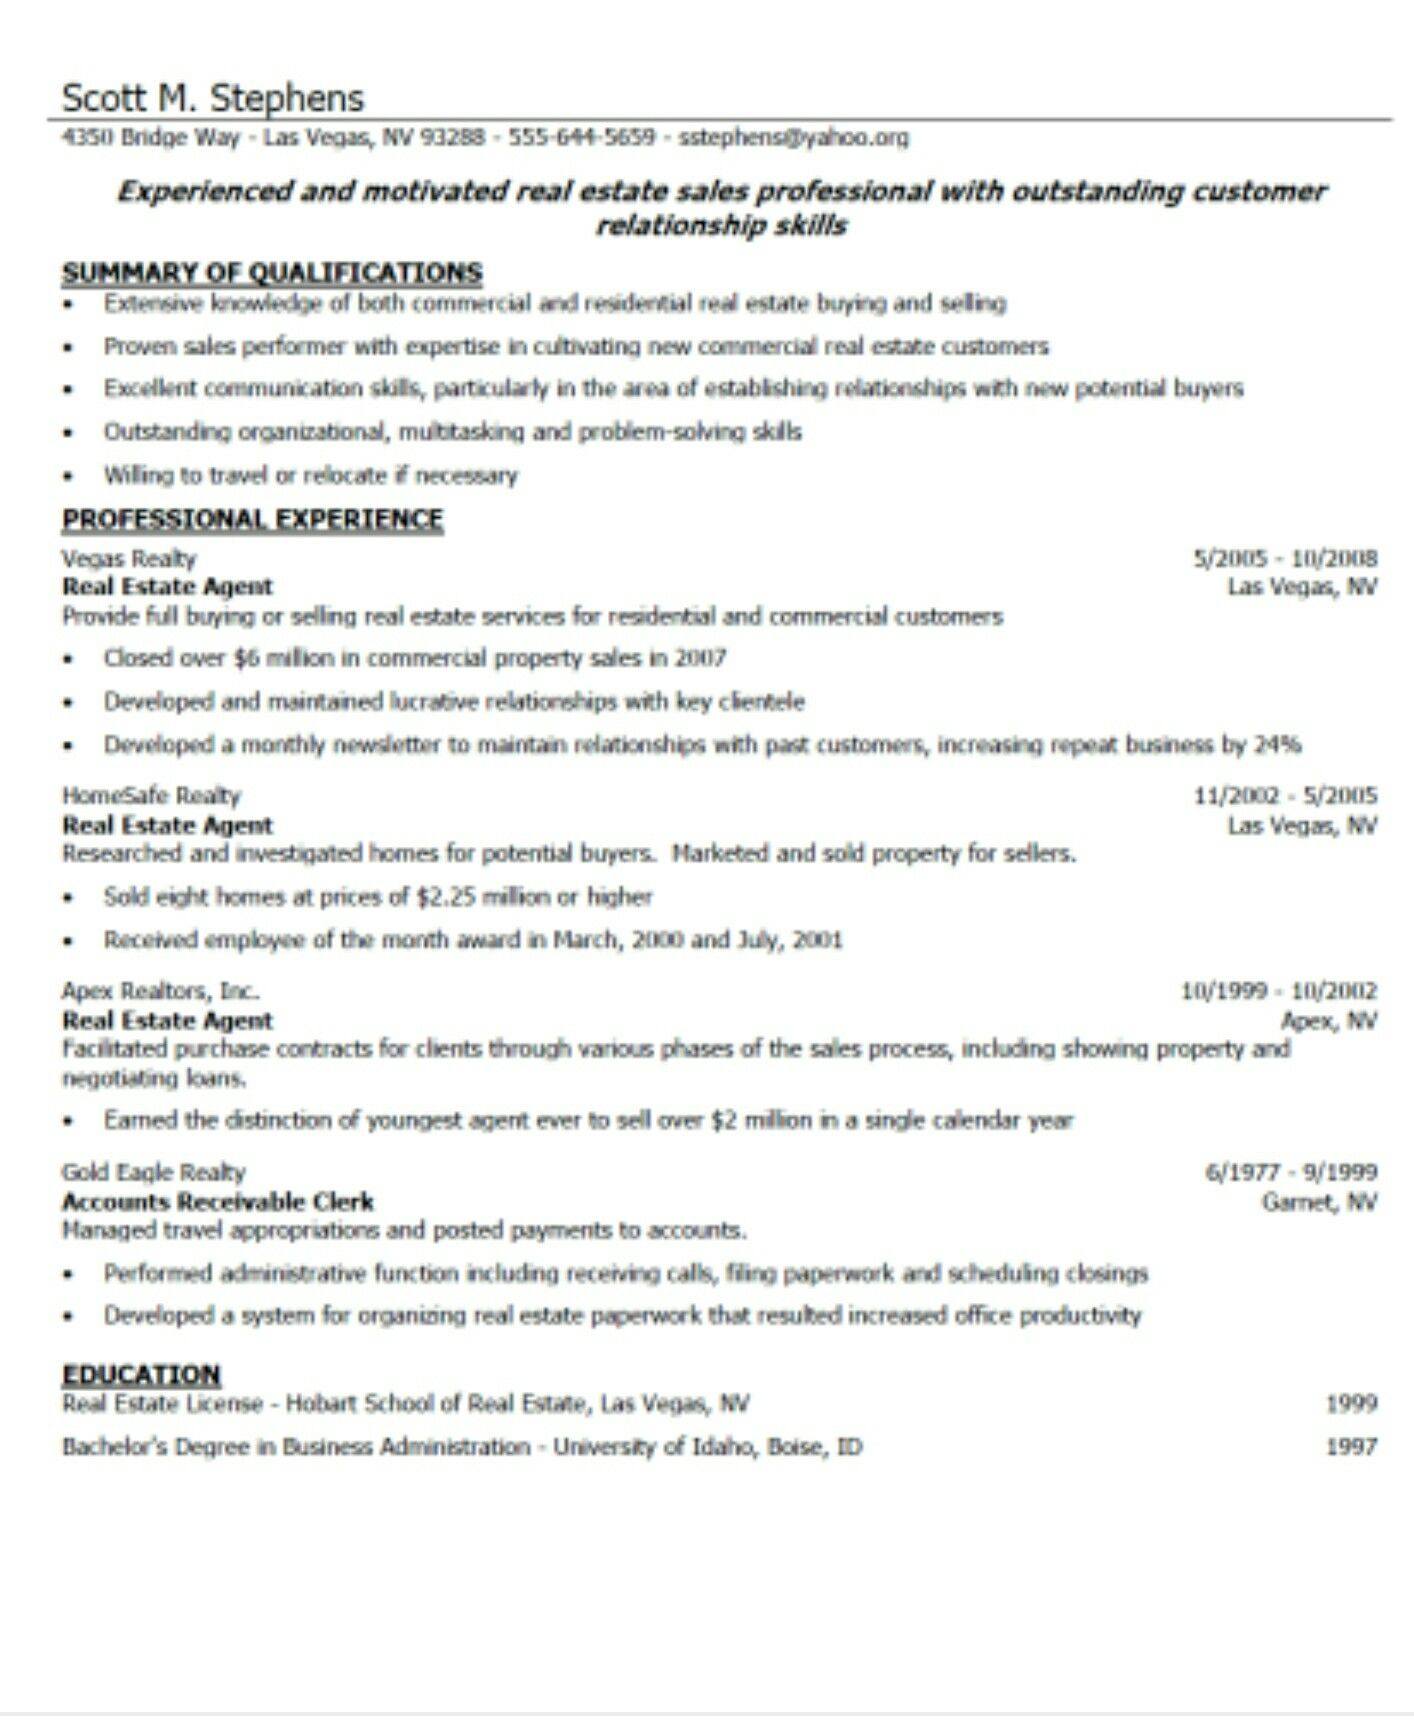 this image shows an example of a resume and how a